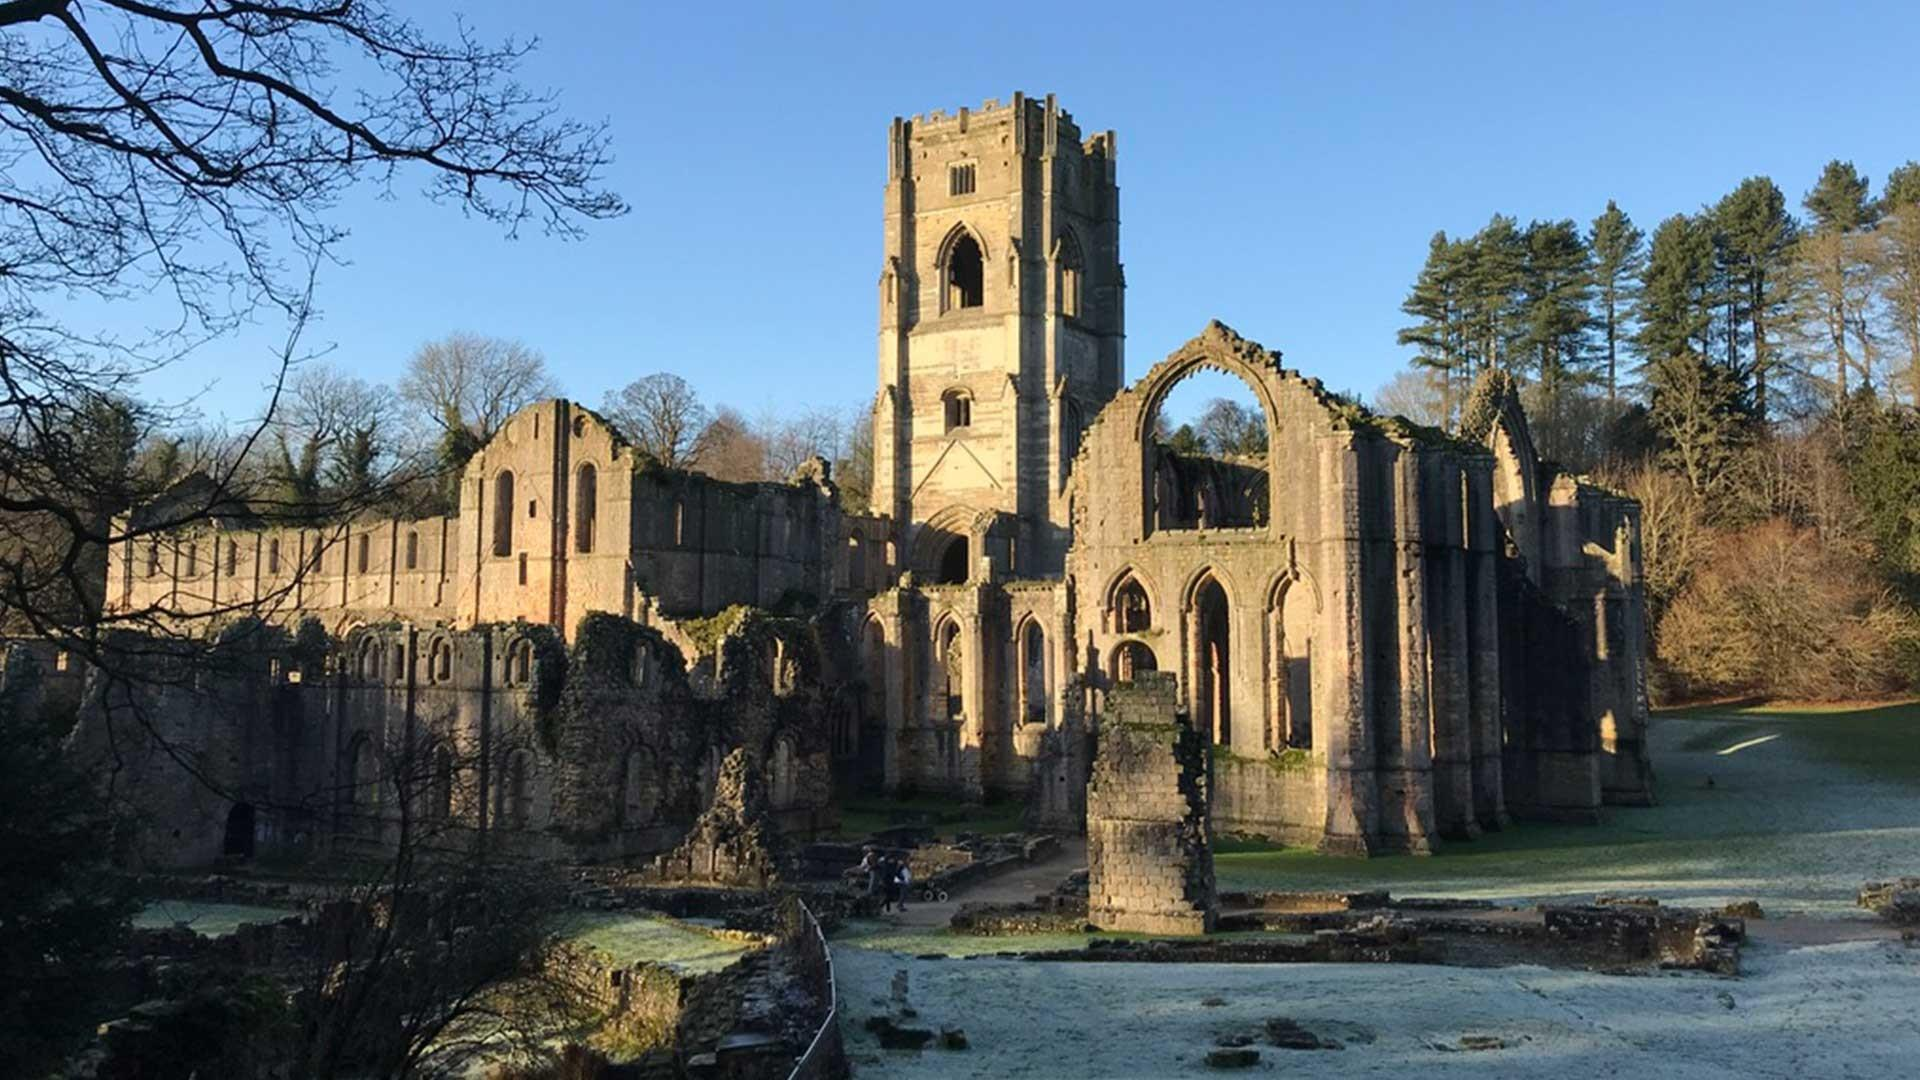 Frosty Fountains Abbey in the winter sunlight